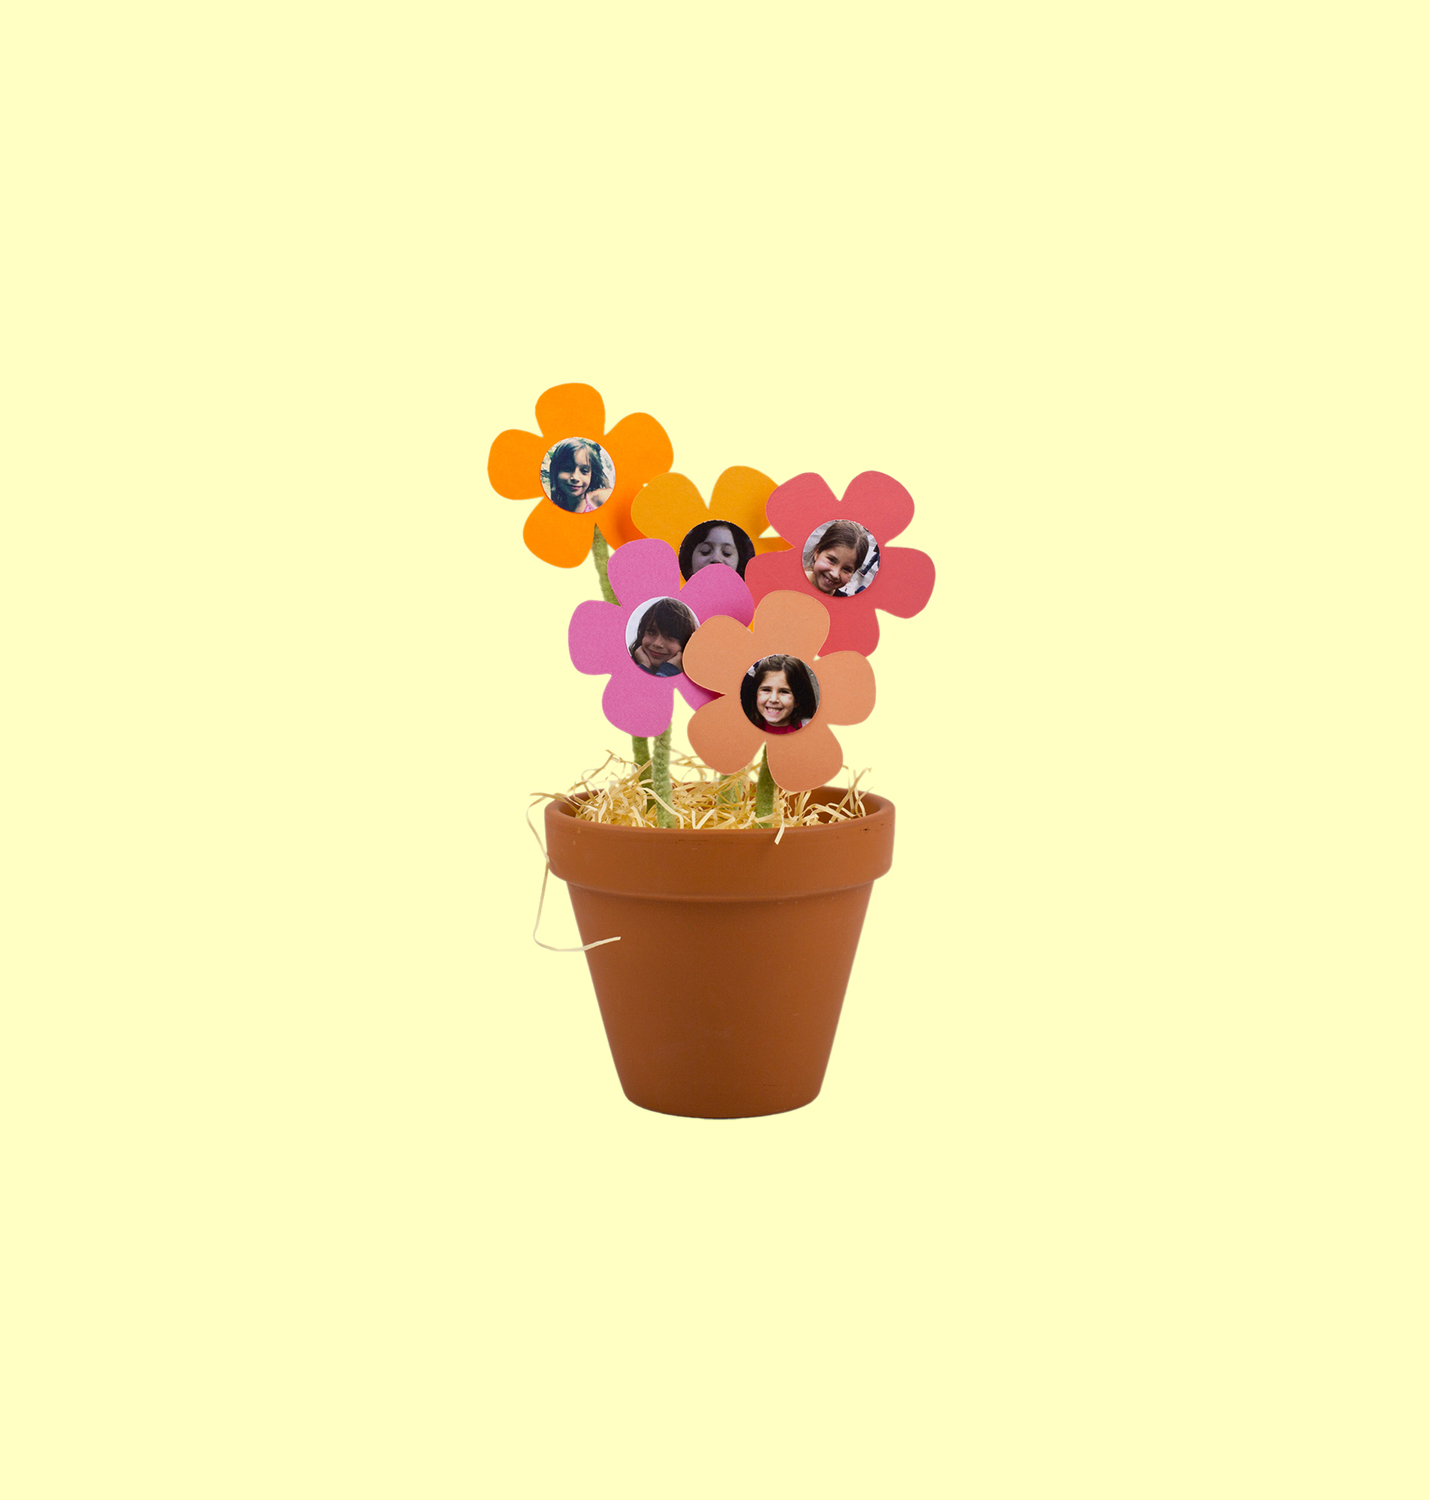 Potted Flower Photos